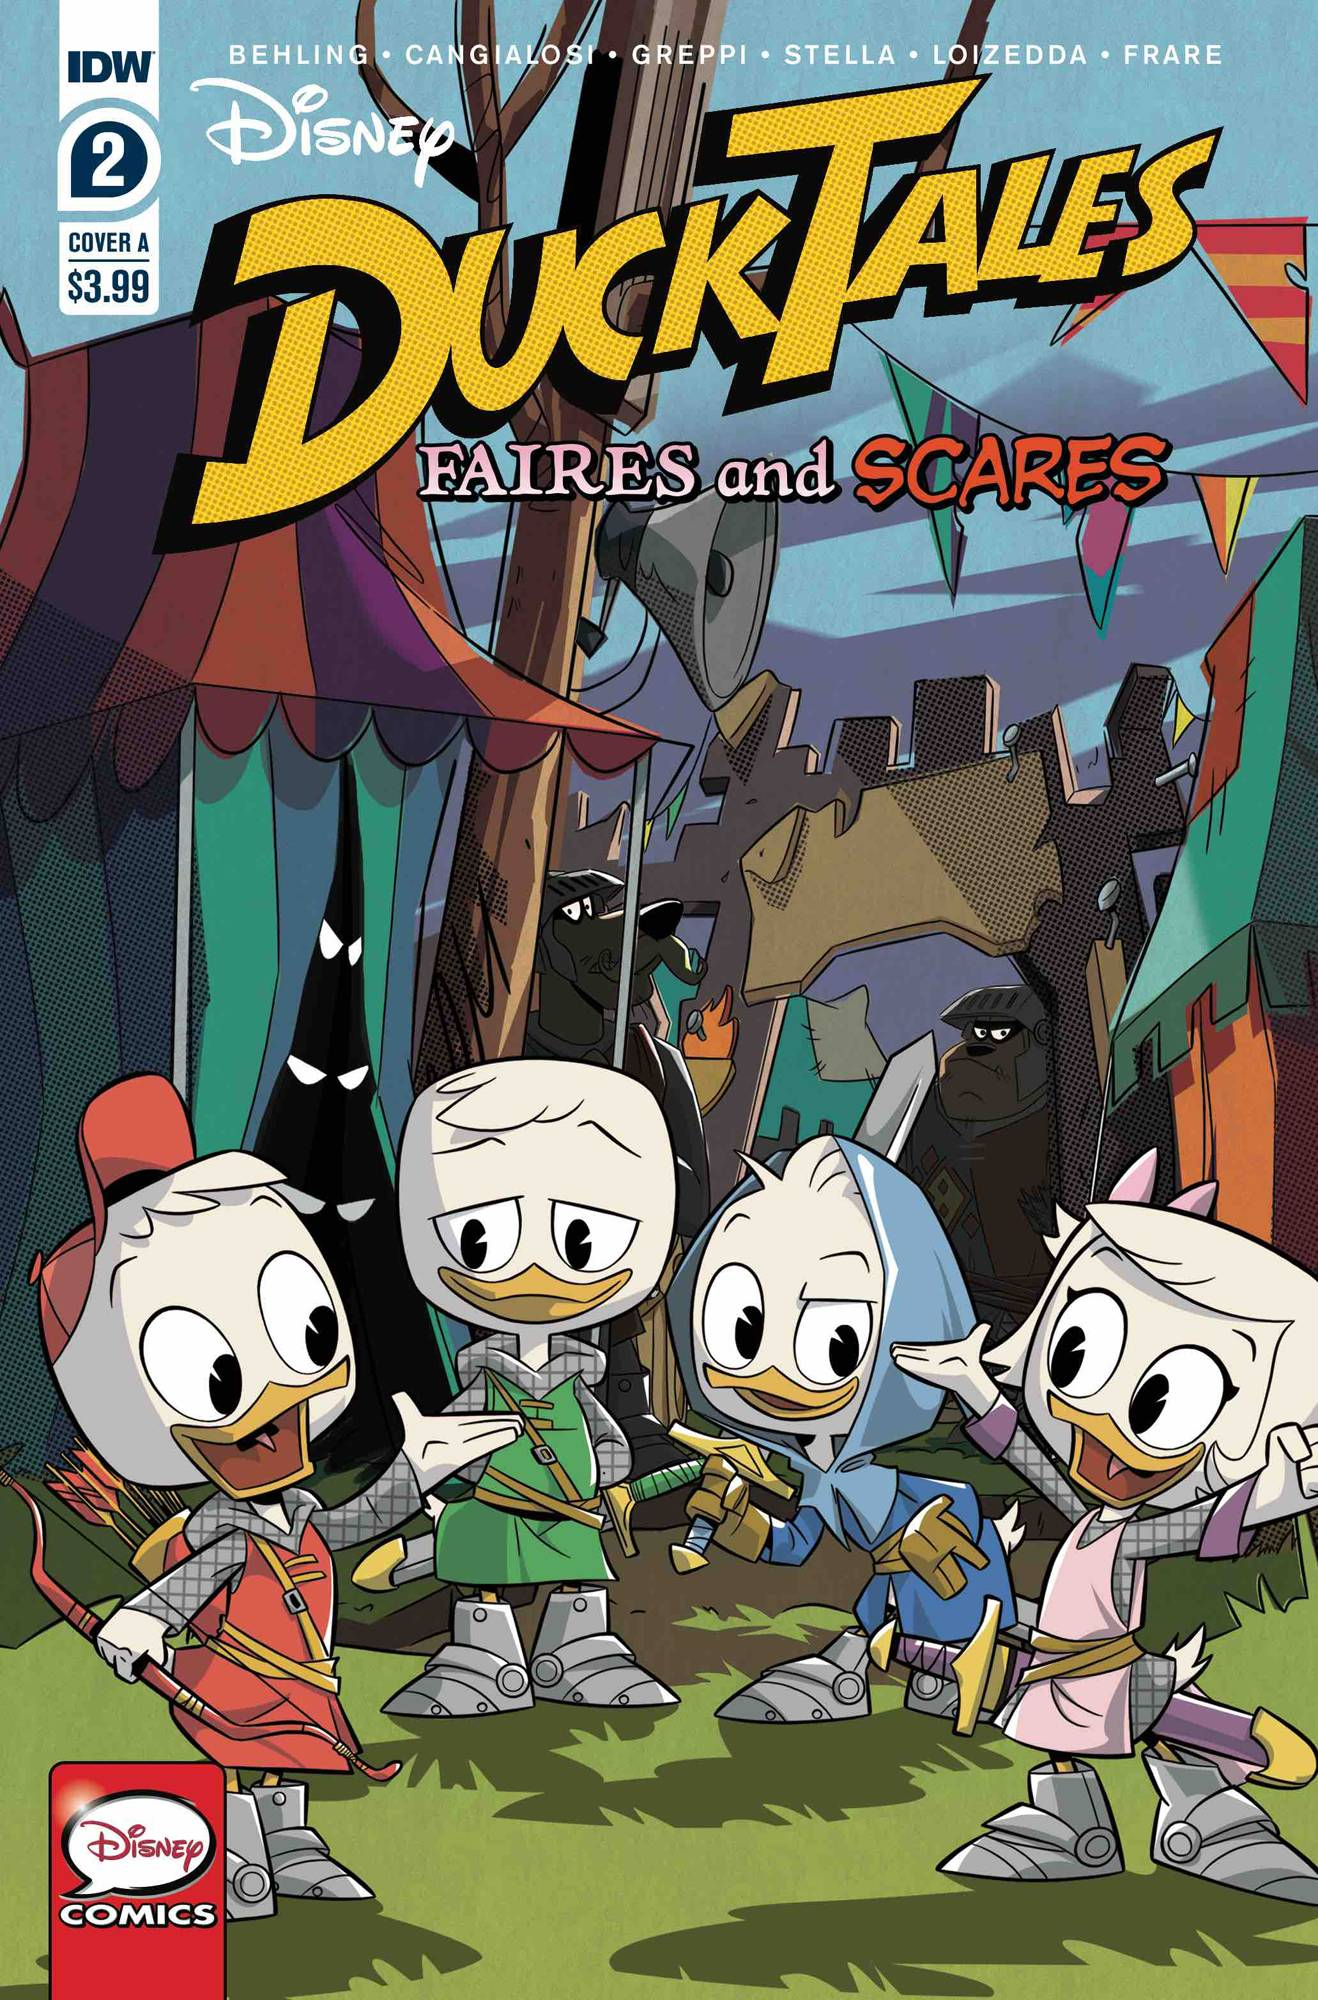 DuckTales: Faires & Scares #2 (2020)